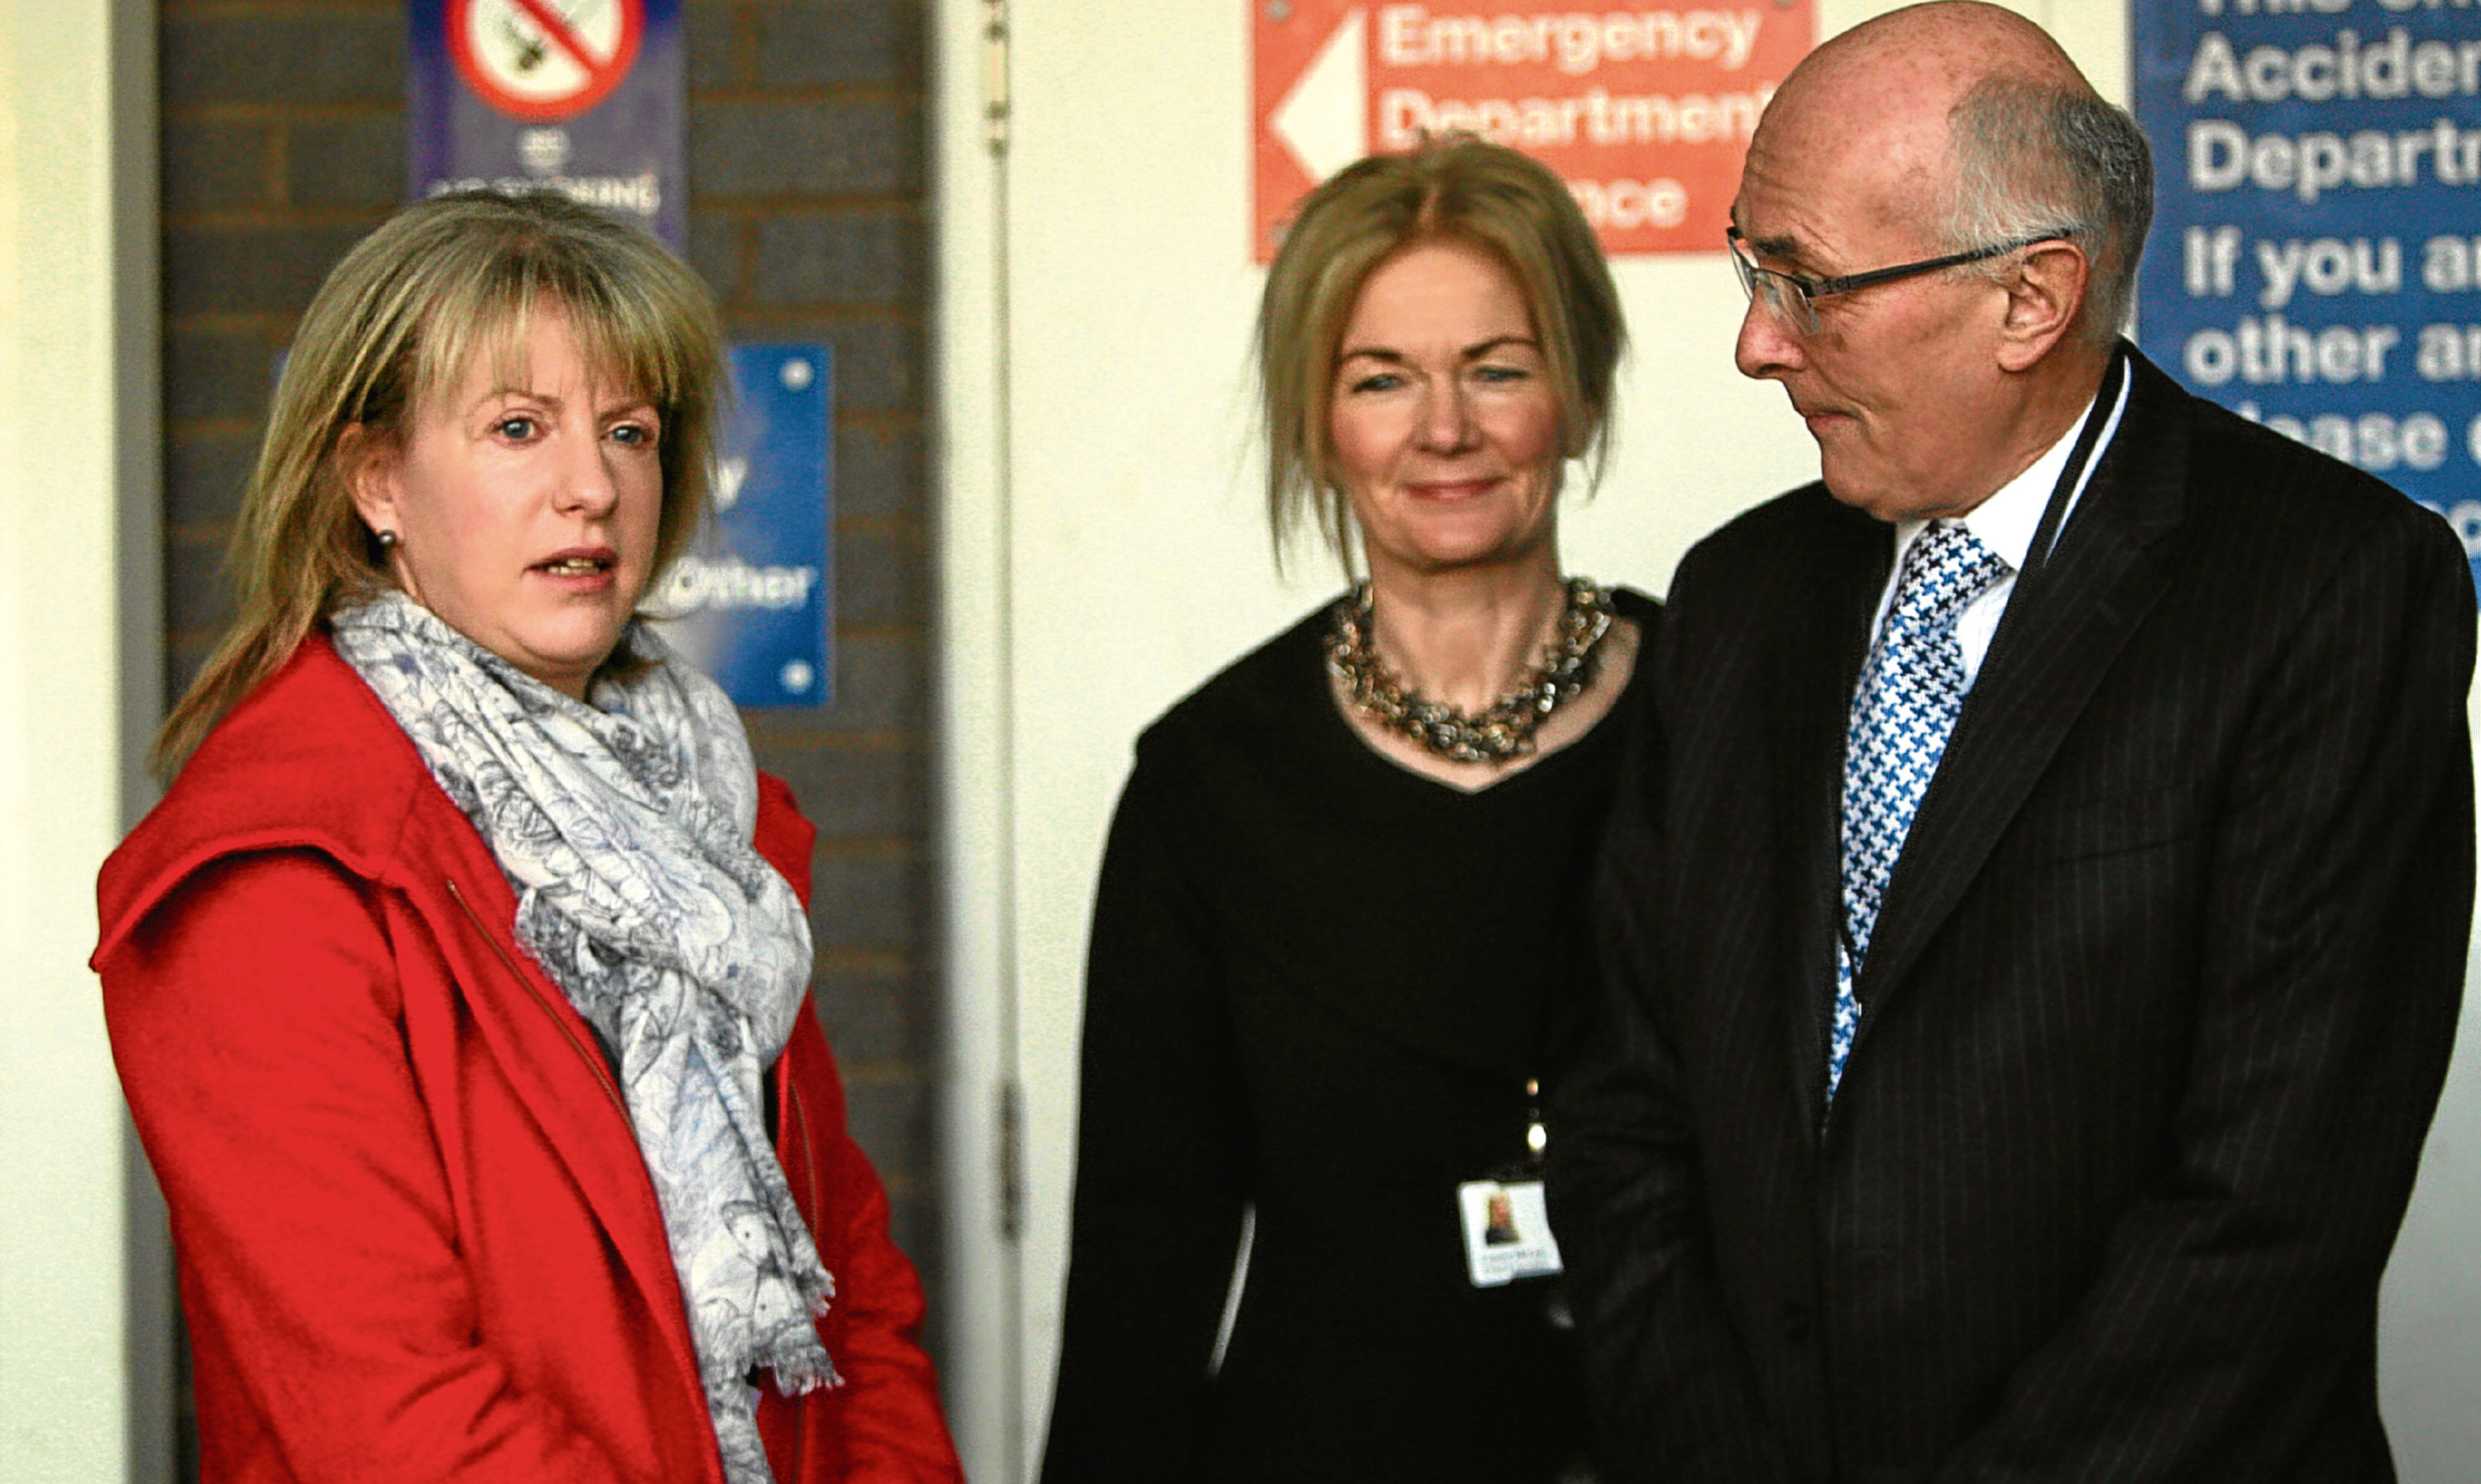 Shona Robison with NHS Tayside chief executive Lesley McLay and Professor John Connell, chairman of the Tayside NHS Board. (library photo)